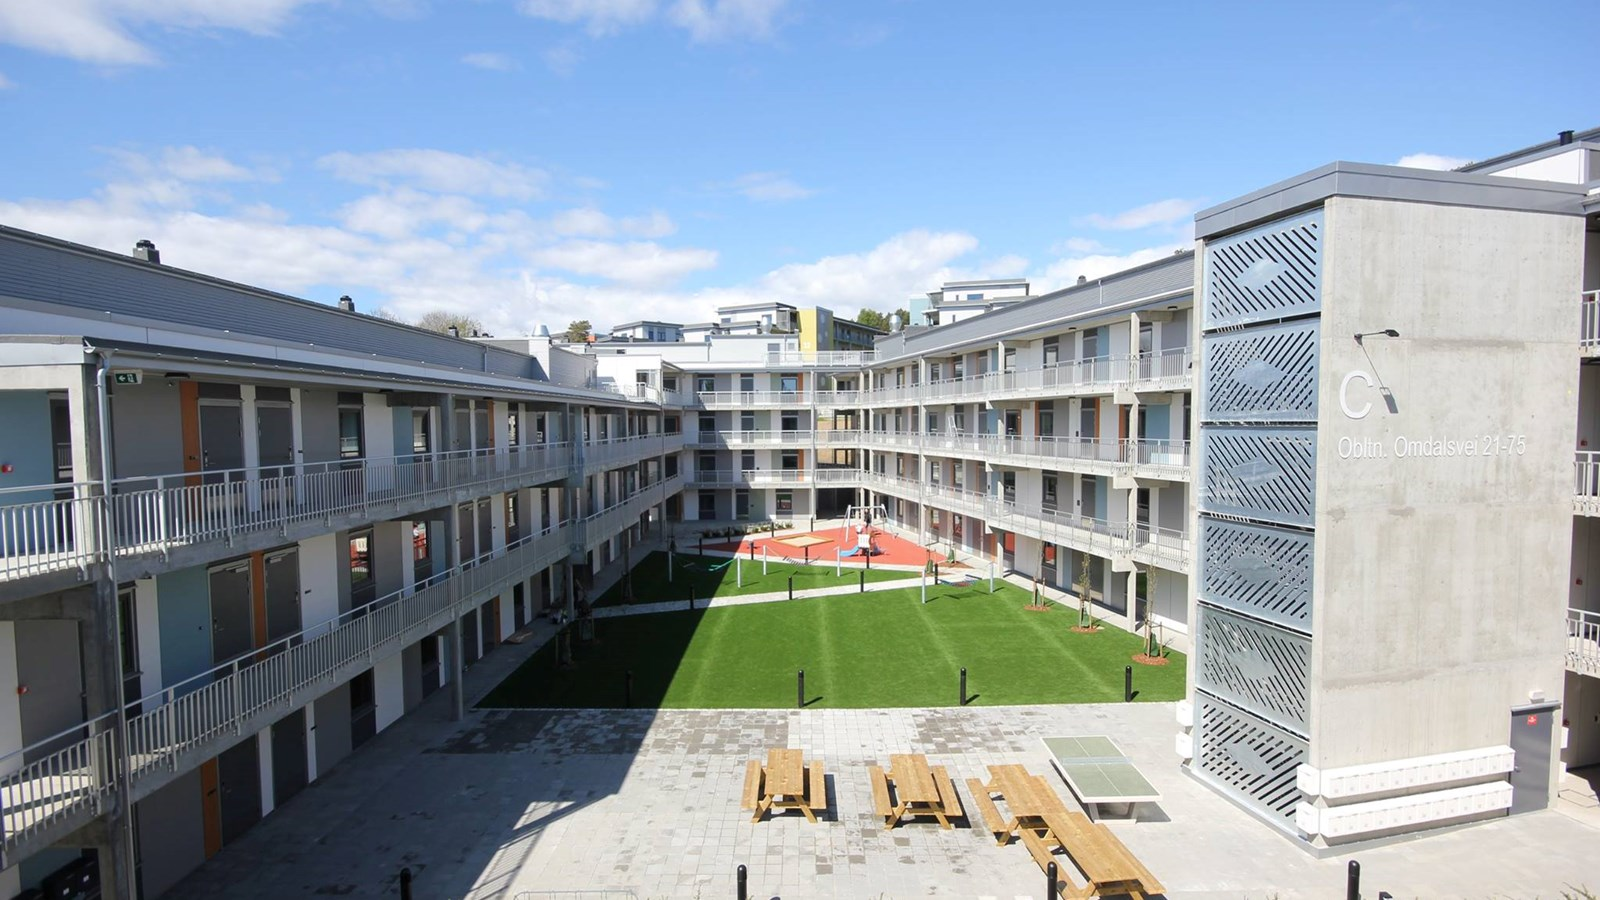 Affordable student accommodation